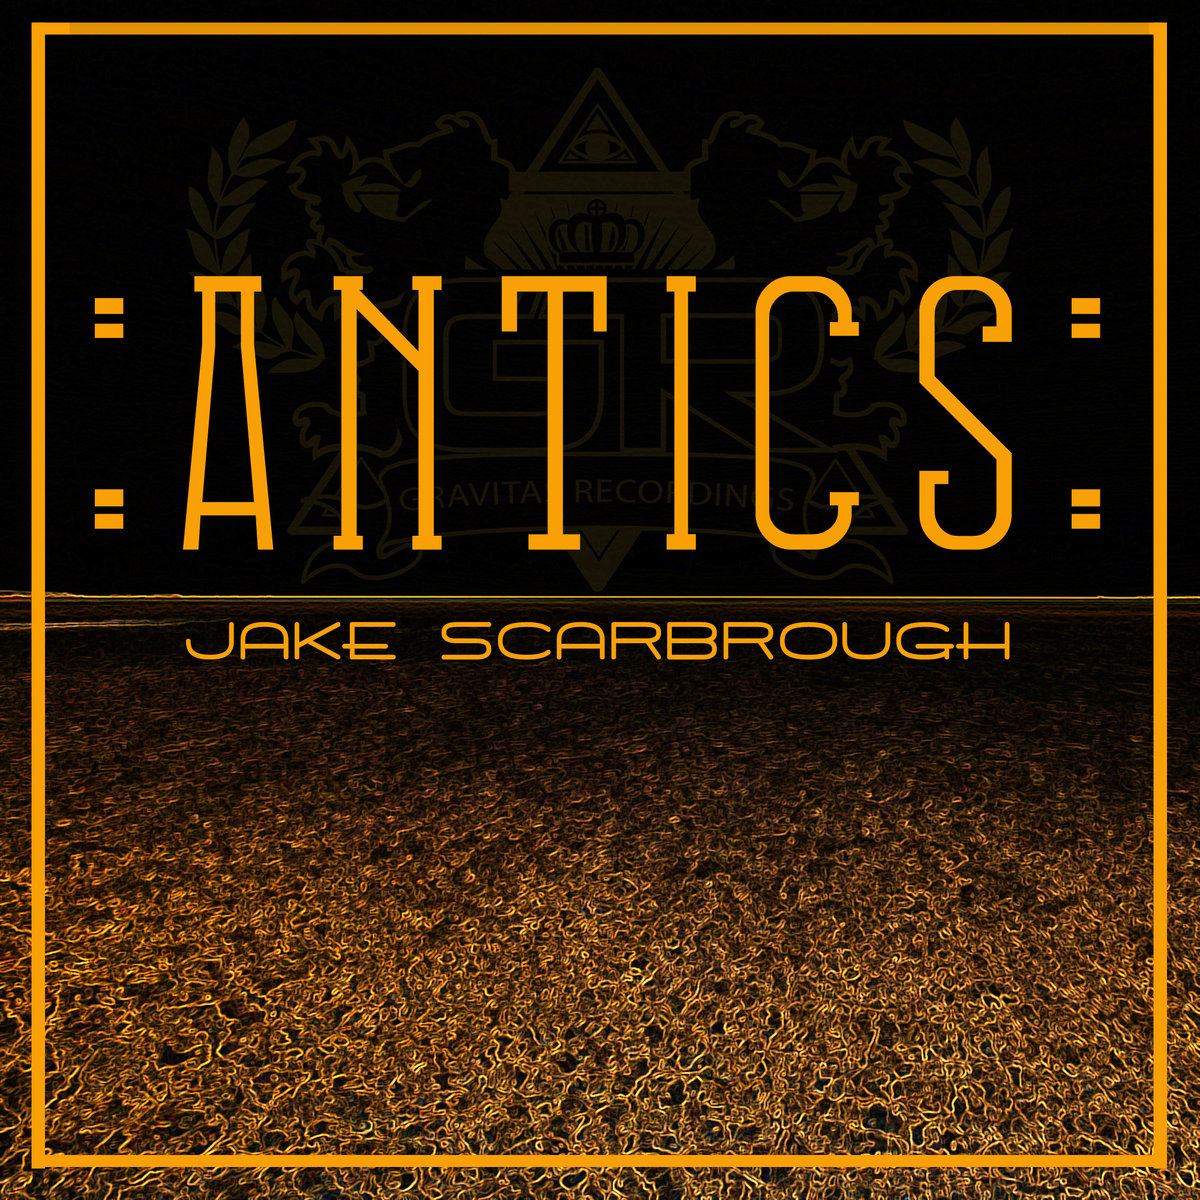 Jake Scarbrough - Antics @ 'Antics' album (Austin)